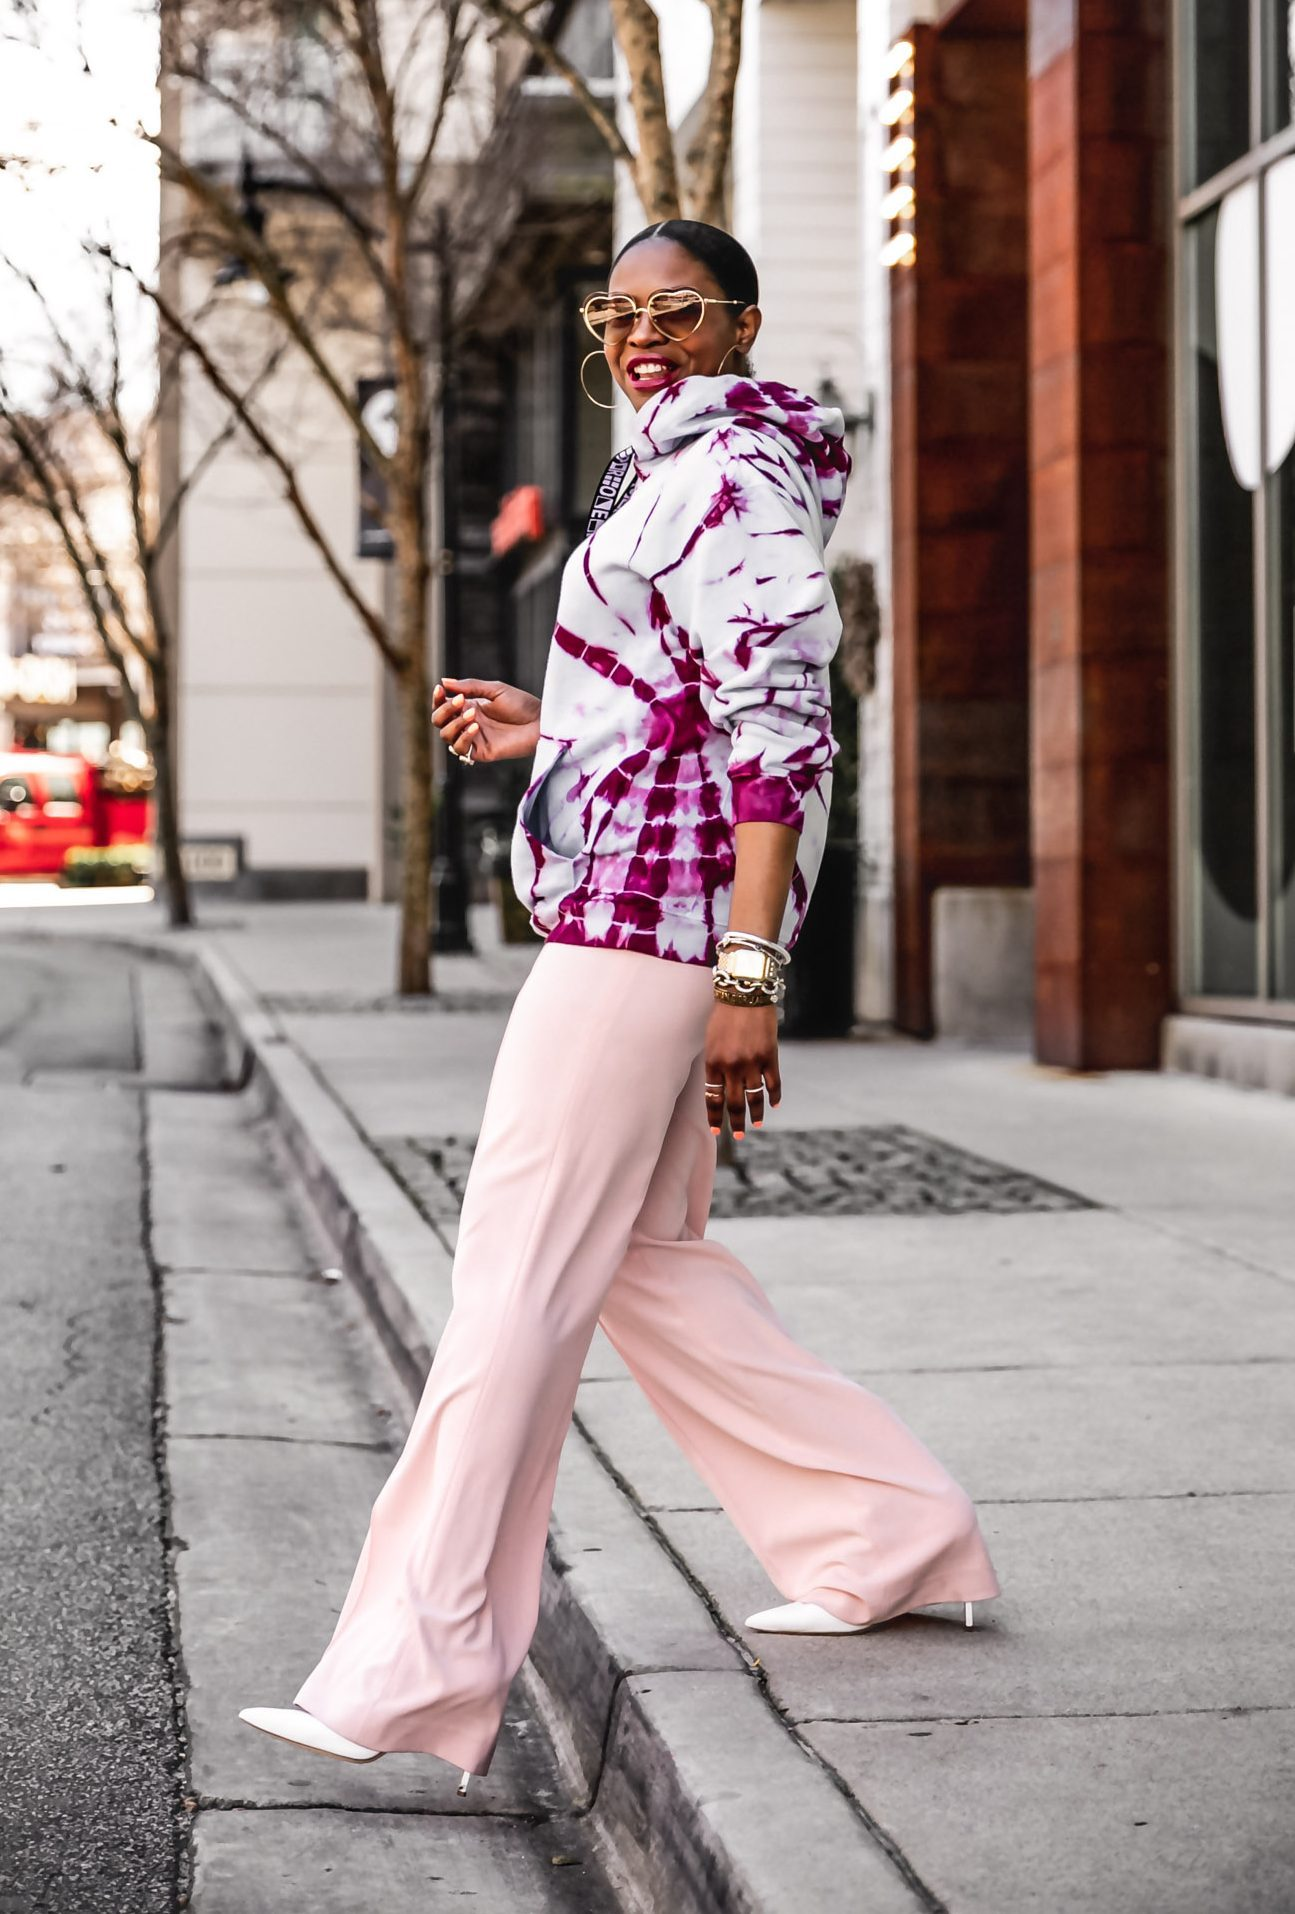 Atlanta fashion bloggers Monica Awe-Etuk wearing a proenza schouler alice and olivia high waist pink pants, chloe heart sunglasses, dior friendship bracelets, shows you how to wear the tie-dye trend